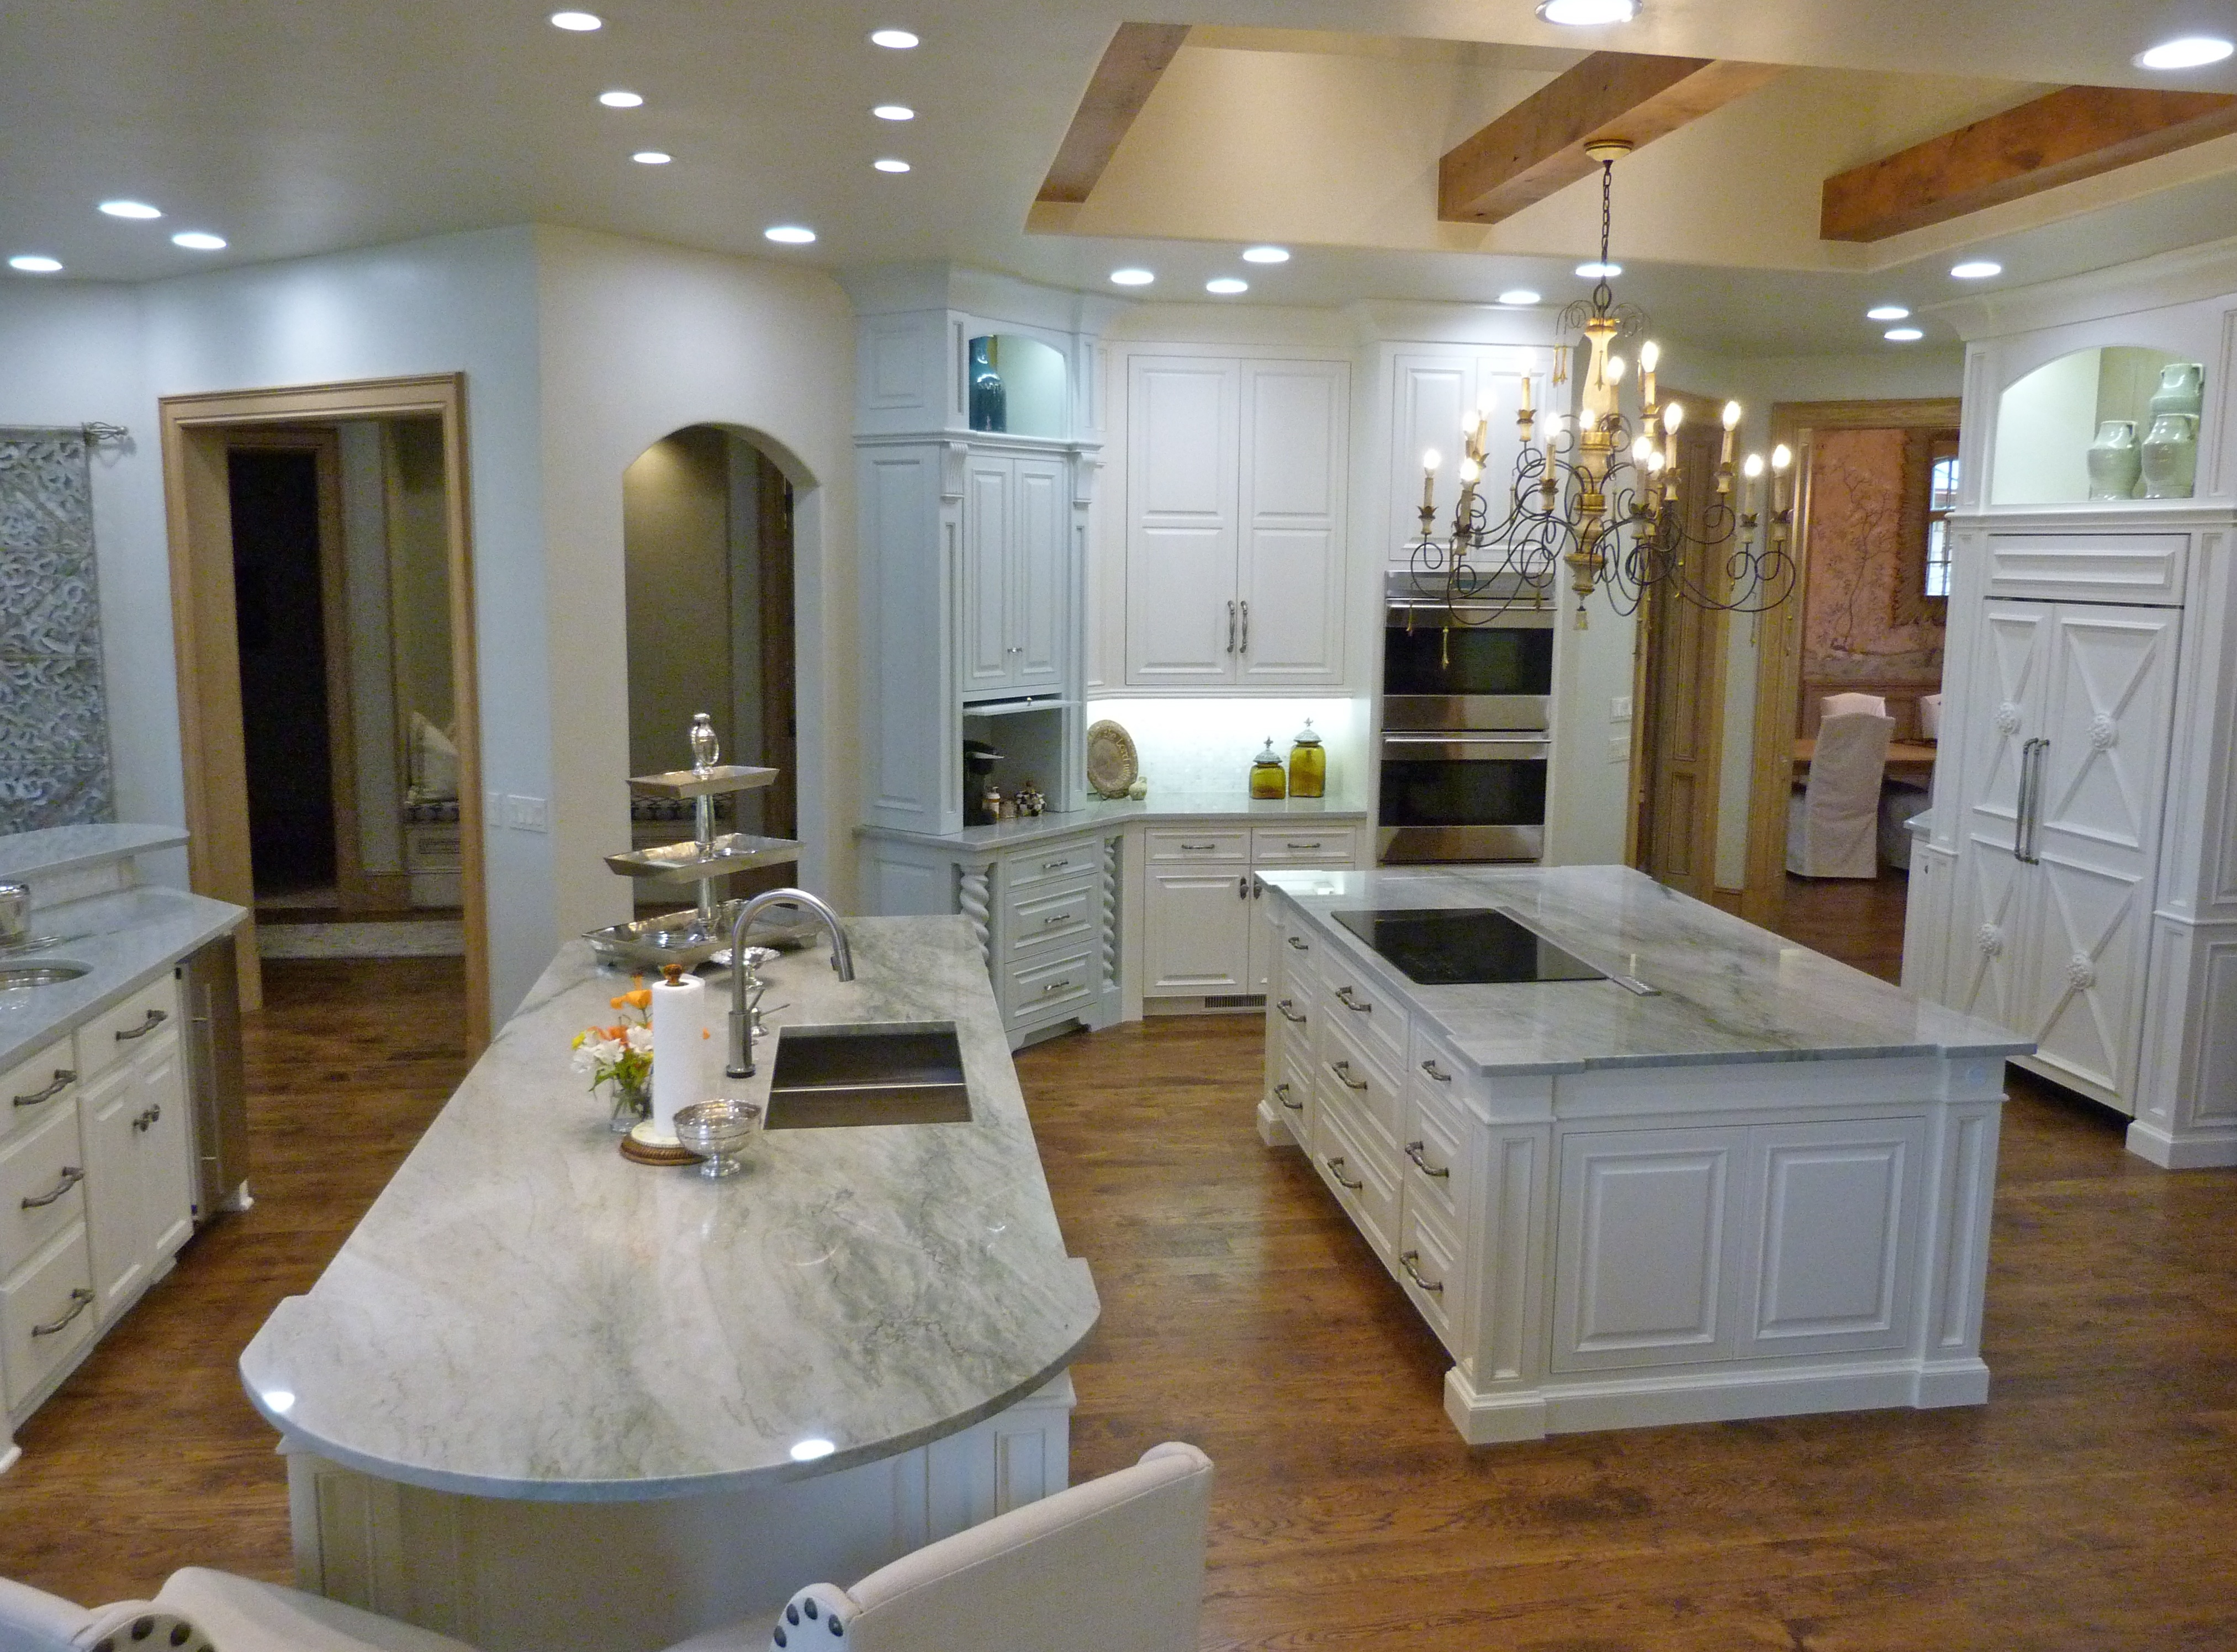 majesticconstructionok kitchen remodel okc Large kitchen with beams and three islands from Majestic Construction remodel